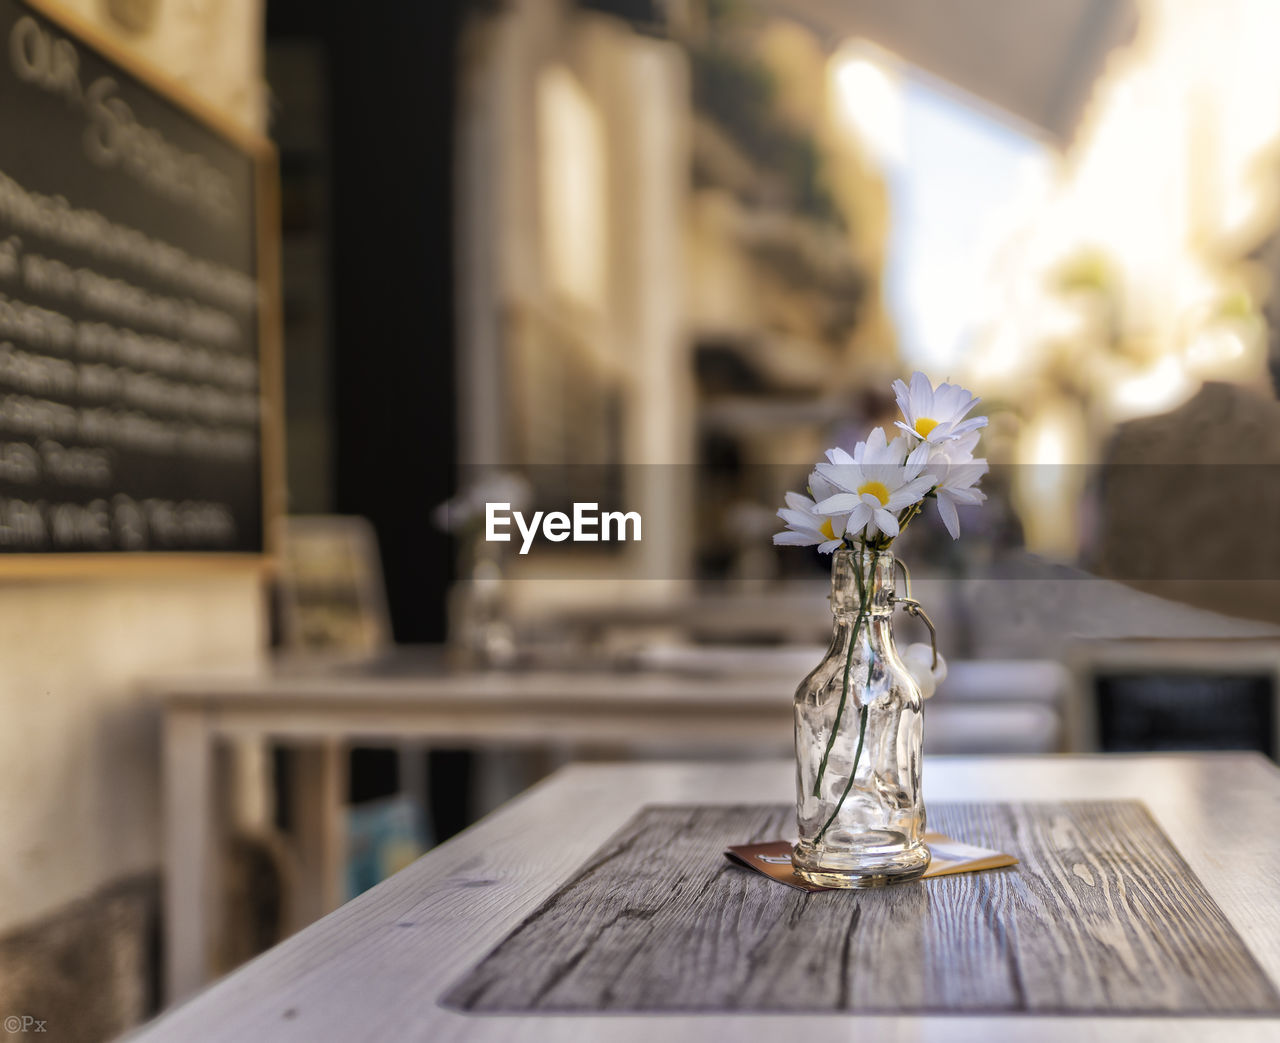 table, wood - material, flowering plant, flower, plant, no people, vase, nature, indoors, selective focus, focus on foreground, freshness, still life, day, close-up, transparent, decoration, beauty in nature, restaurant, flower head, tray, silver colored